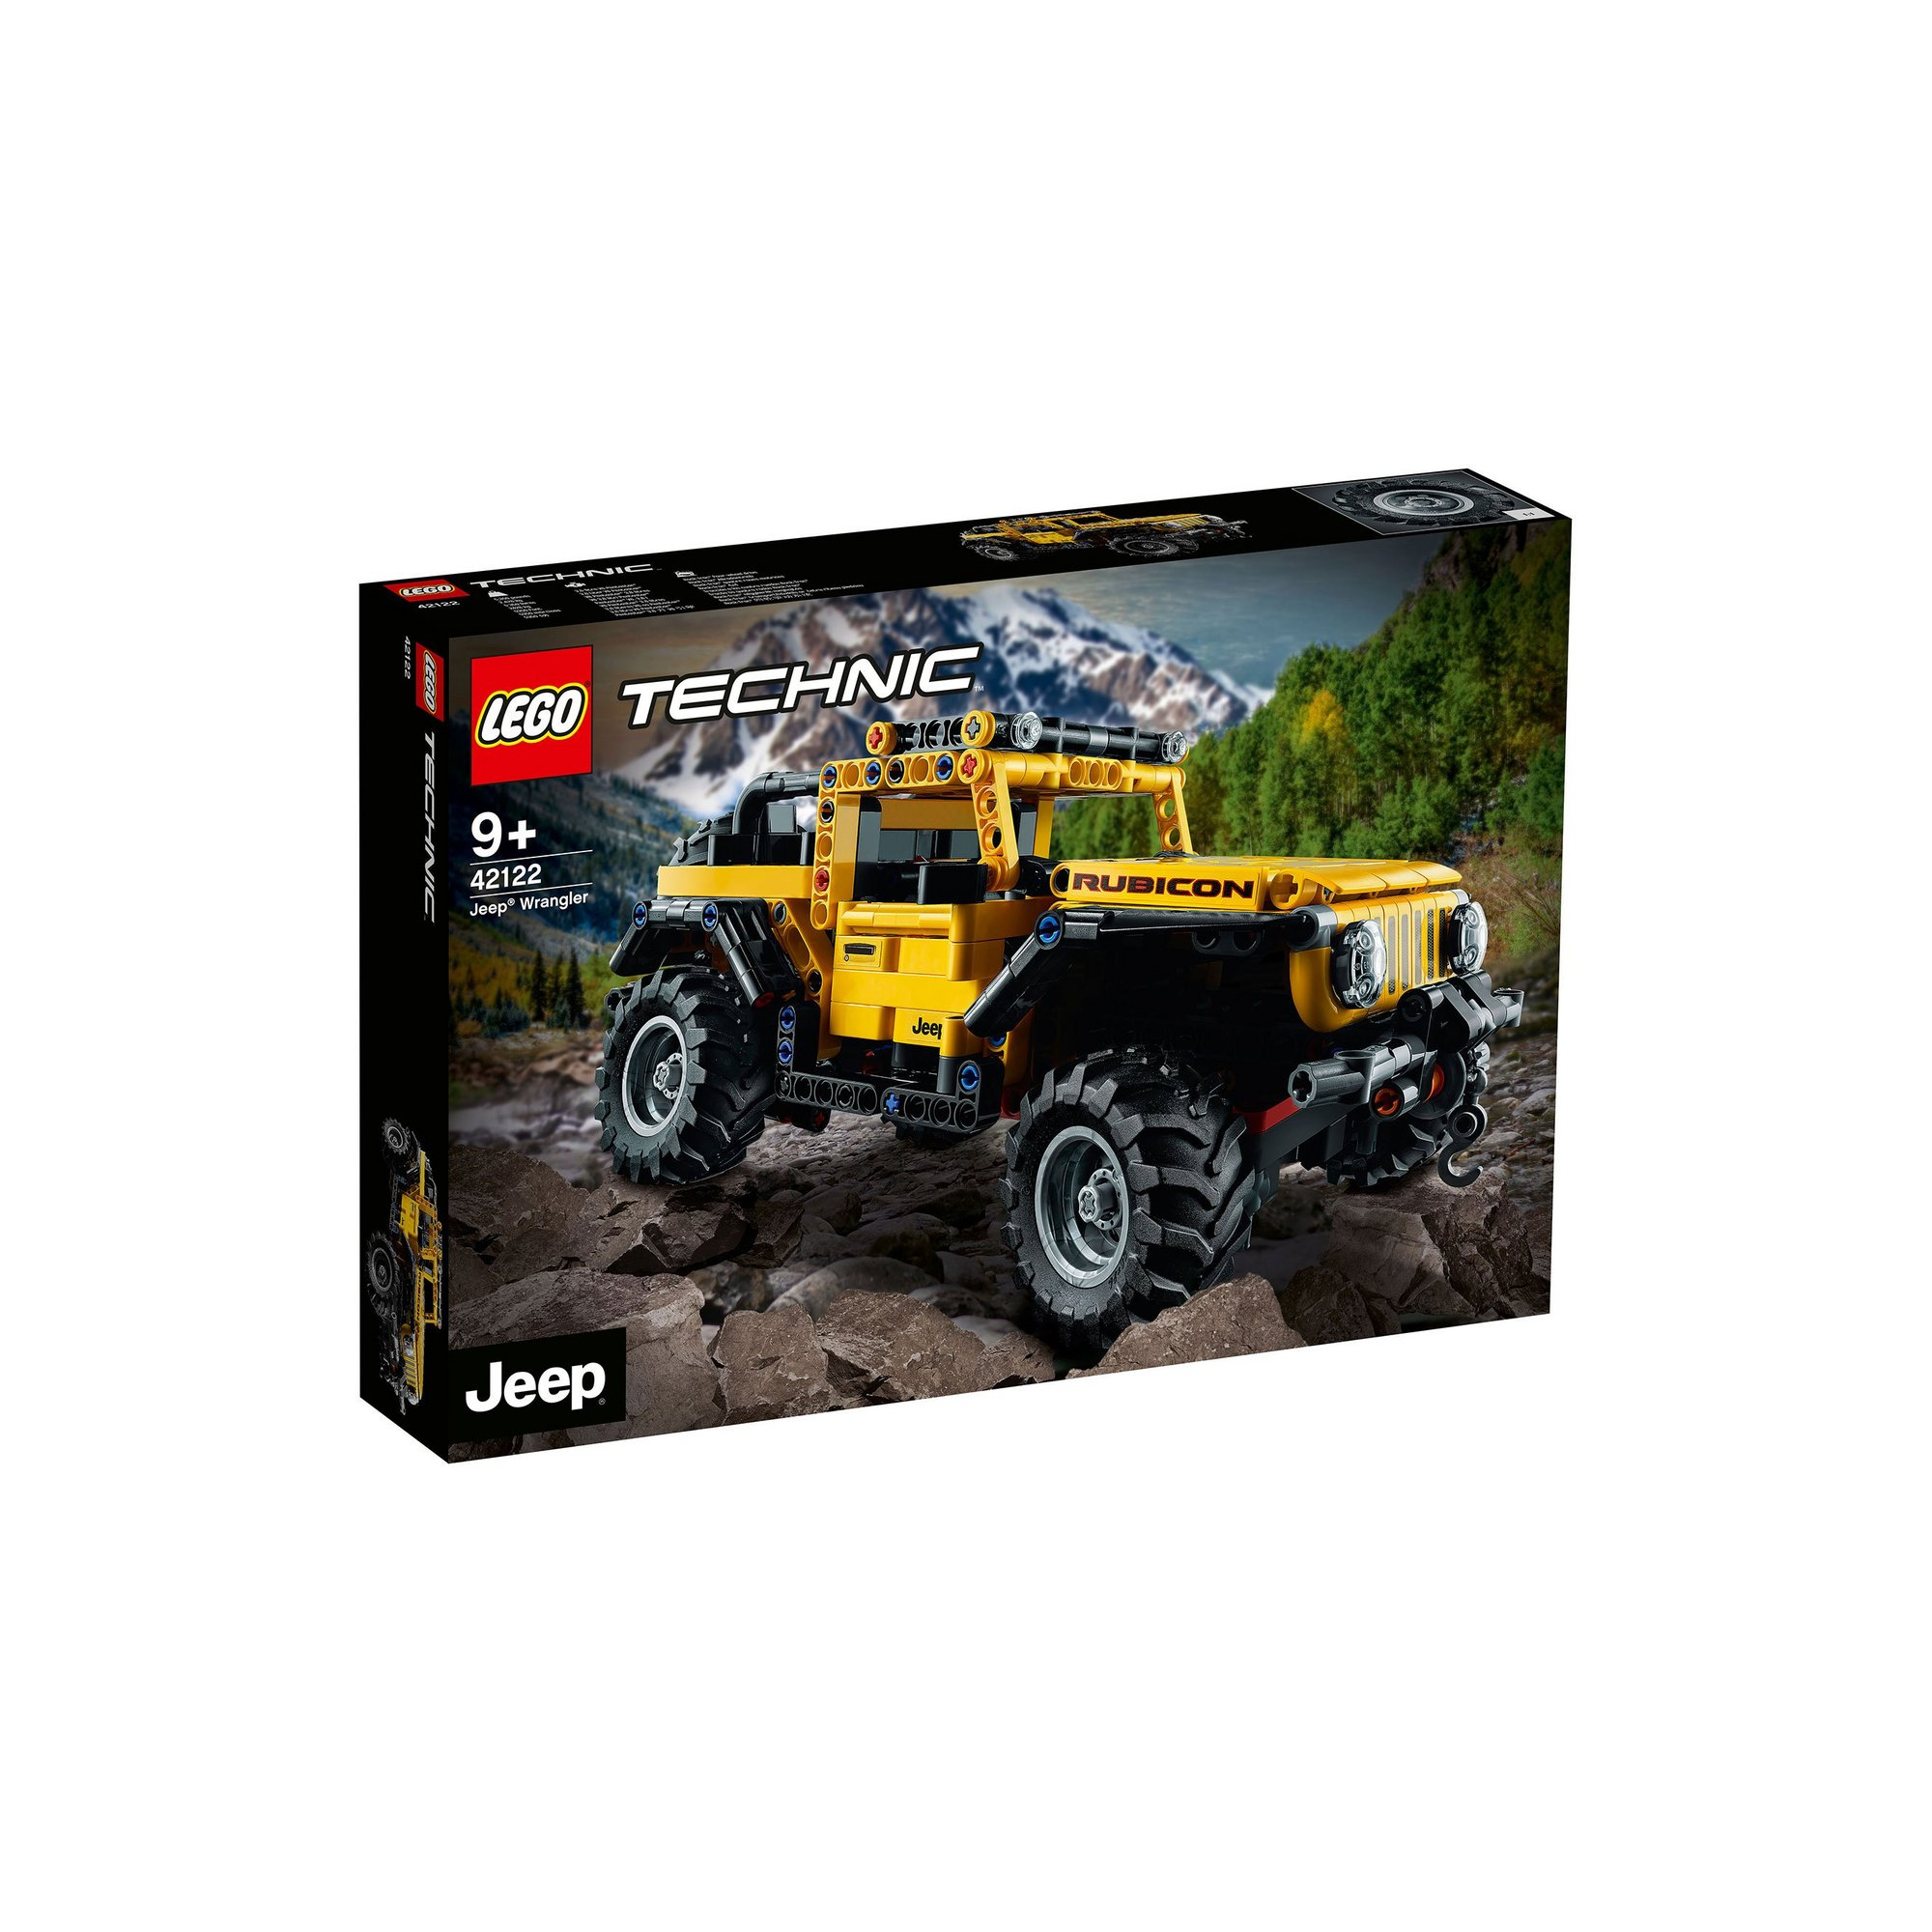 Image of LEGO Technic Jeep Wrangler